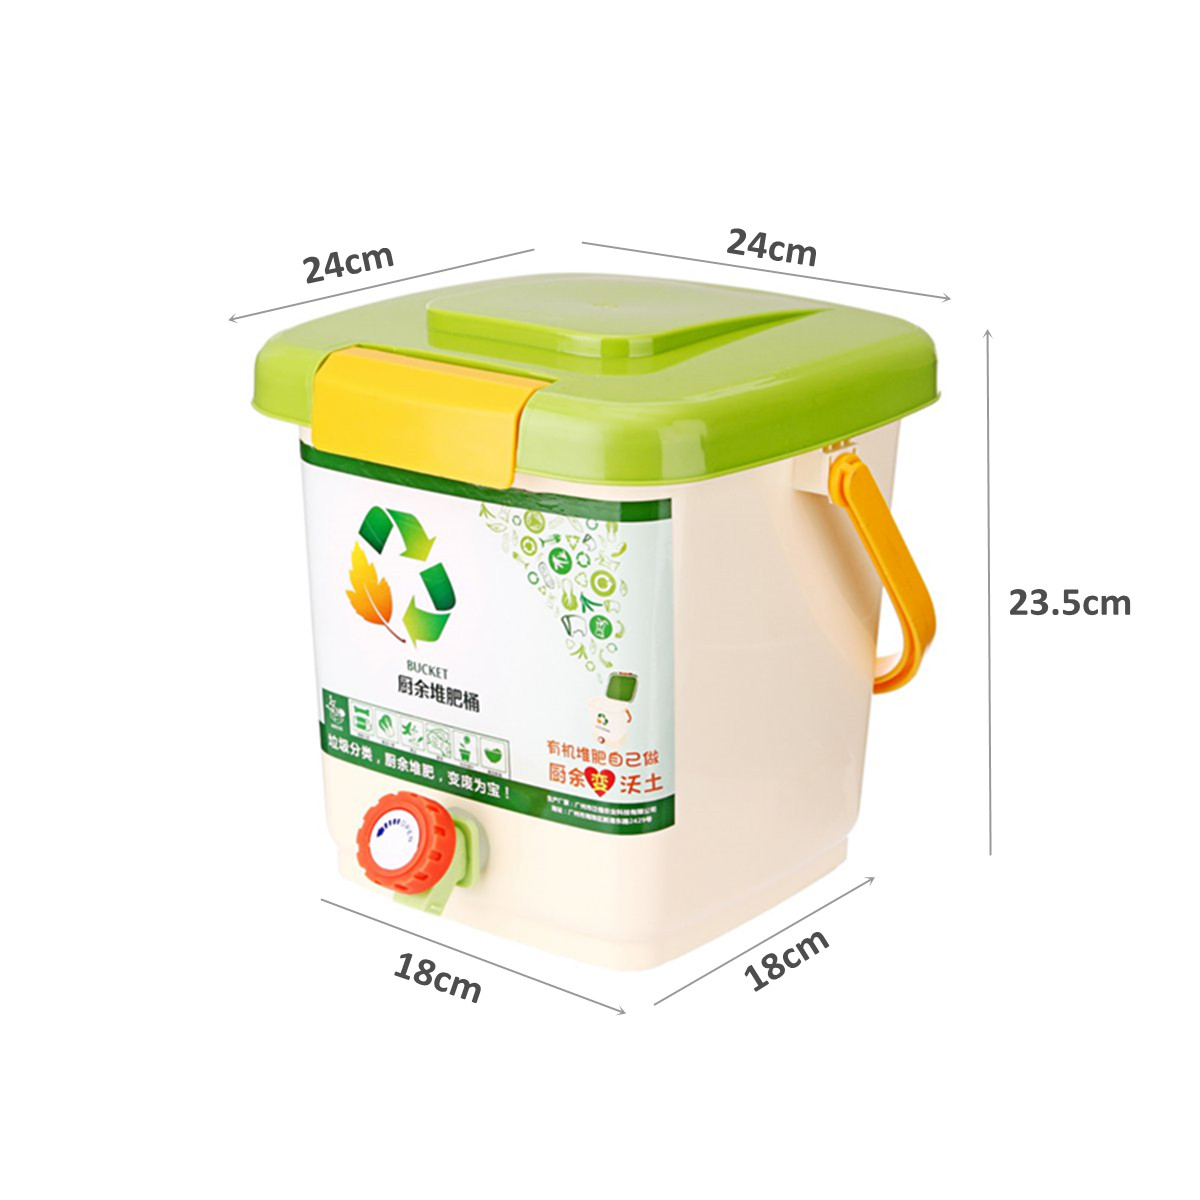 10L Recycle Composter Aerated Compost Bin Bokashi Bucket Kitchen Food Waste Bins